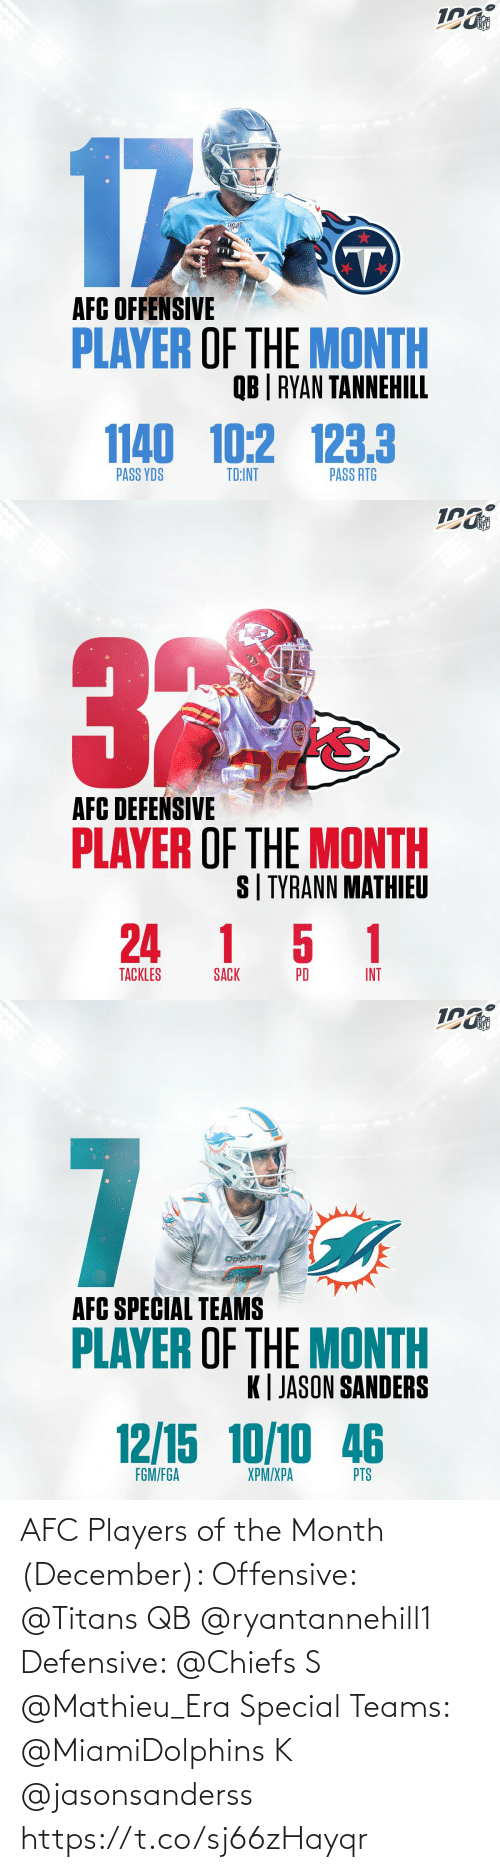 10 10: NFL  17  AFC OFFENSIVE  PLAYER OF THE MONTH  QB | RYAN TANNEHILL  1140 10:2 123.3  PASS RTG  PASS YDS  TD:INT   NFL  AFC DEFEŃSIVE  PLAYER OF THE MONTH  S| TYRANN MATHIEU  24 1 5 1  TACKLES  INT  PD  SACK   NFL  7  Dolphins  AFC SPECIAL TEAMS  PLAYER OF THE MONTH  K| JASON SANDERS  12/15 10/10 46  FGM/FGA  XPM/XPA  PTS AFC Players of the Month (December):   Offensive: @Titans QB @ryantannehill1    Defensive: @Chiefs S @Mathieu_Era   Special Teams: @MiamiDolphins K @jasonsanderss https://t.co/sj66zHayqr